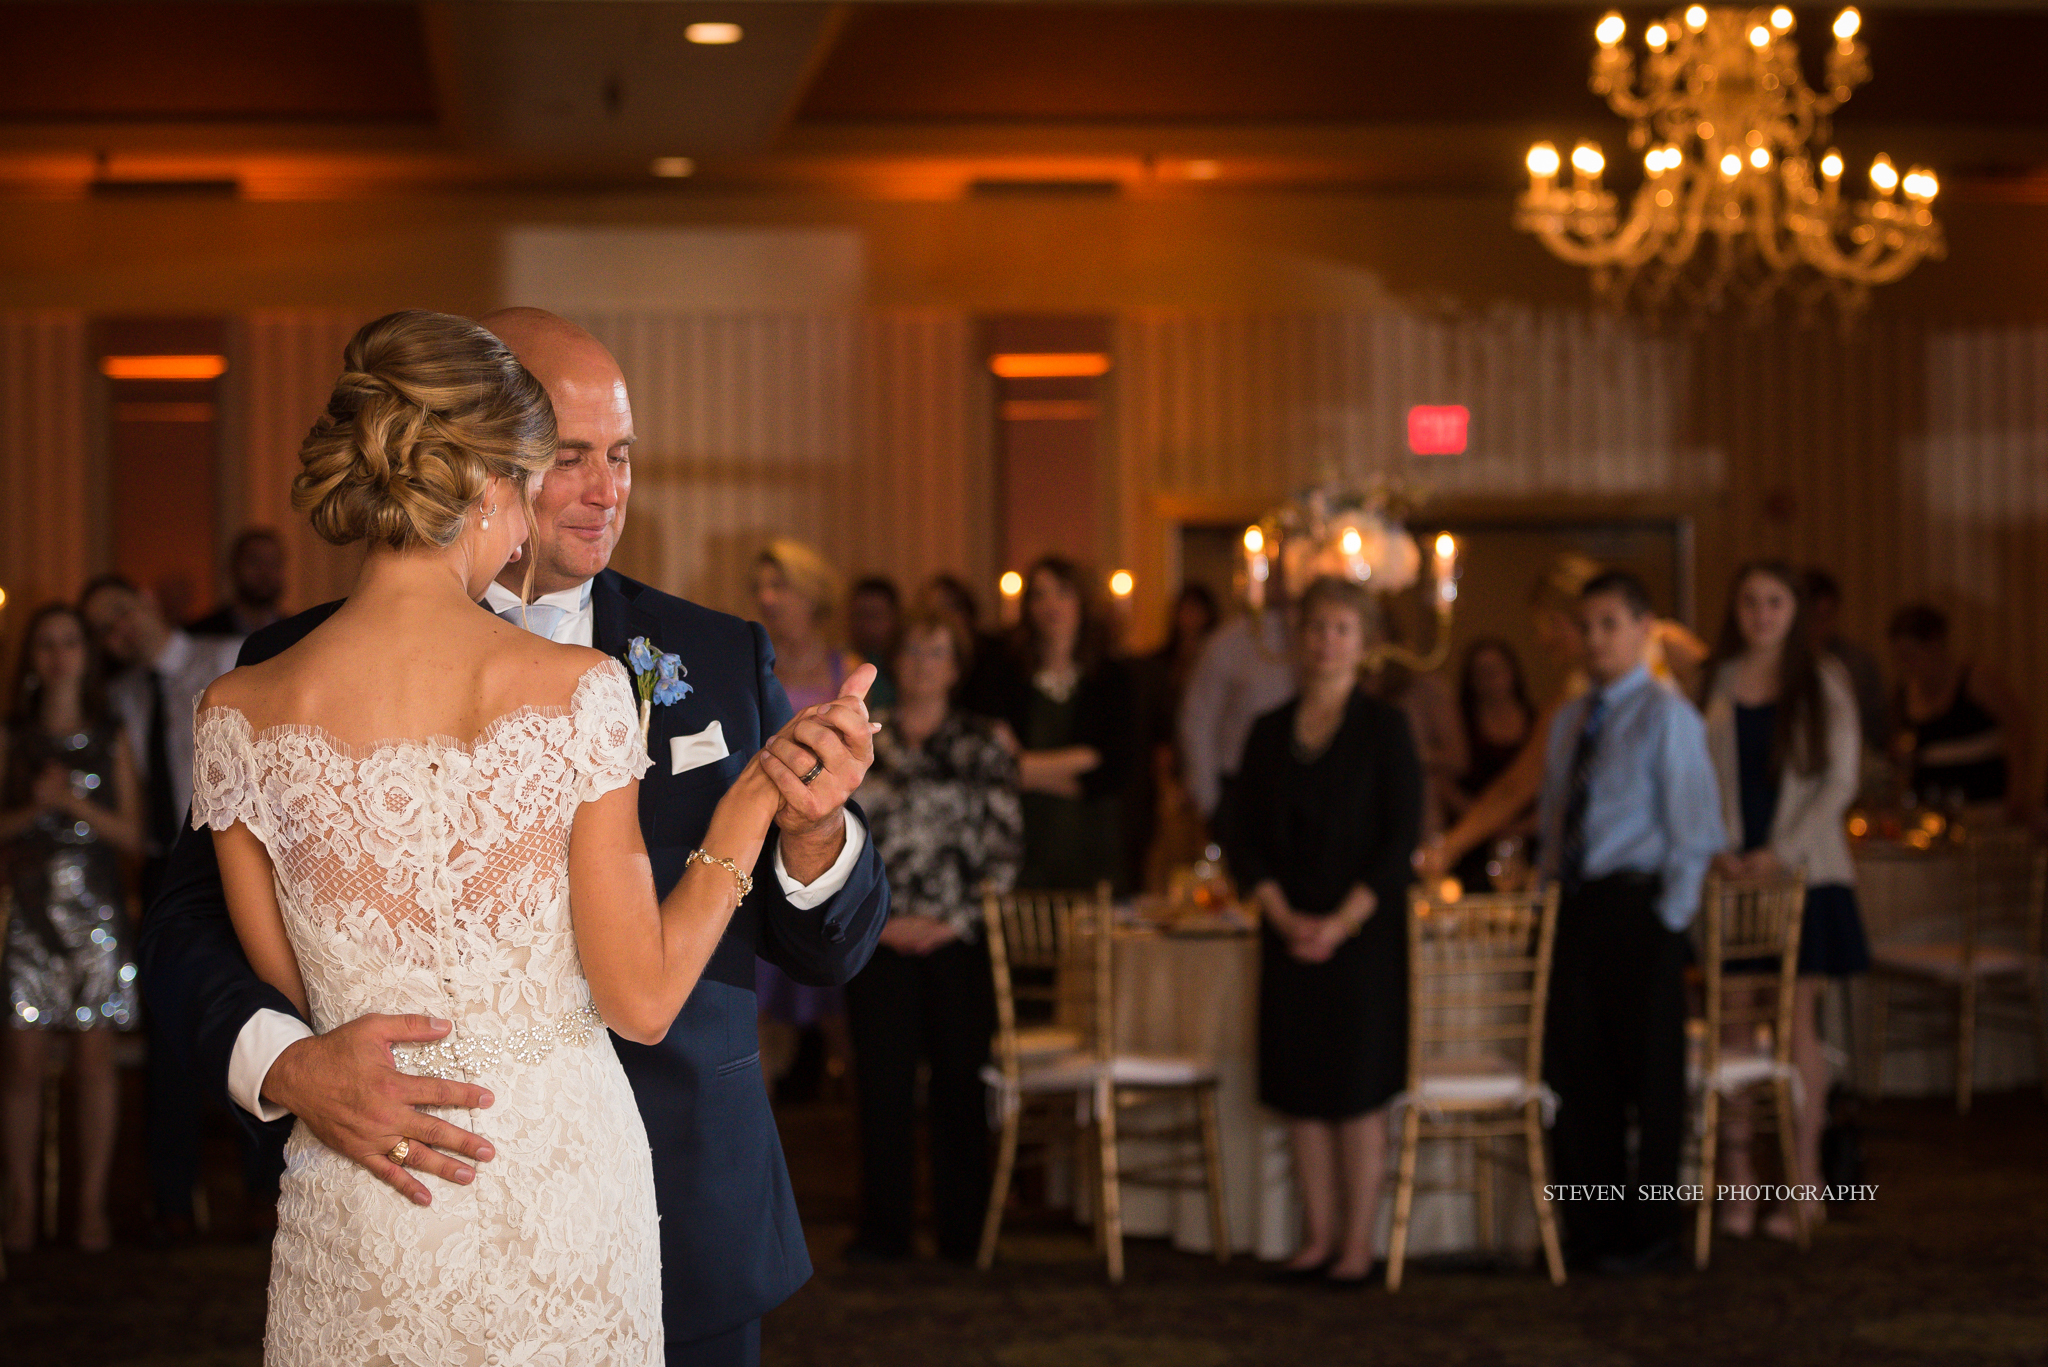 steph-scranton-wedding-steven-serge-photography-41.jpg